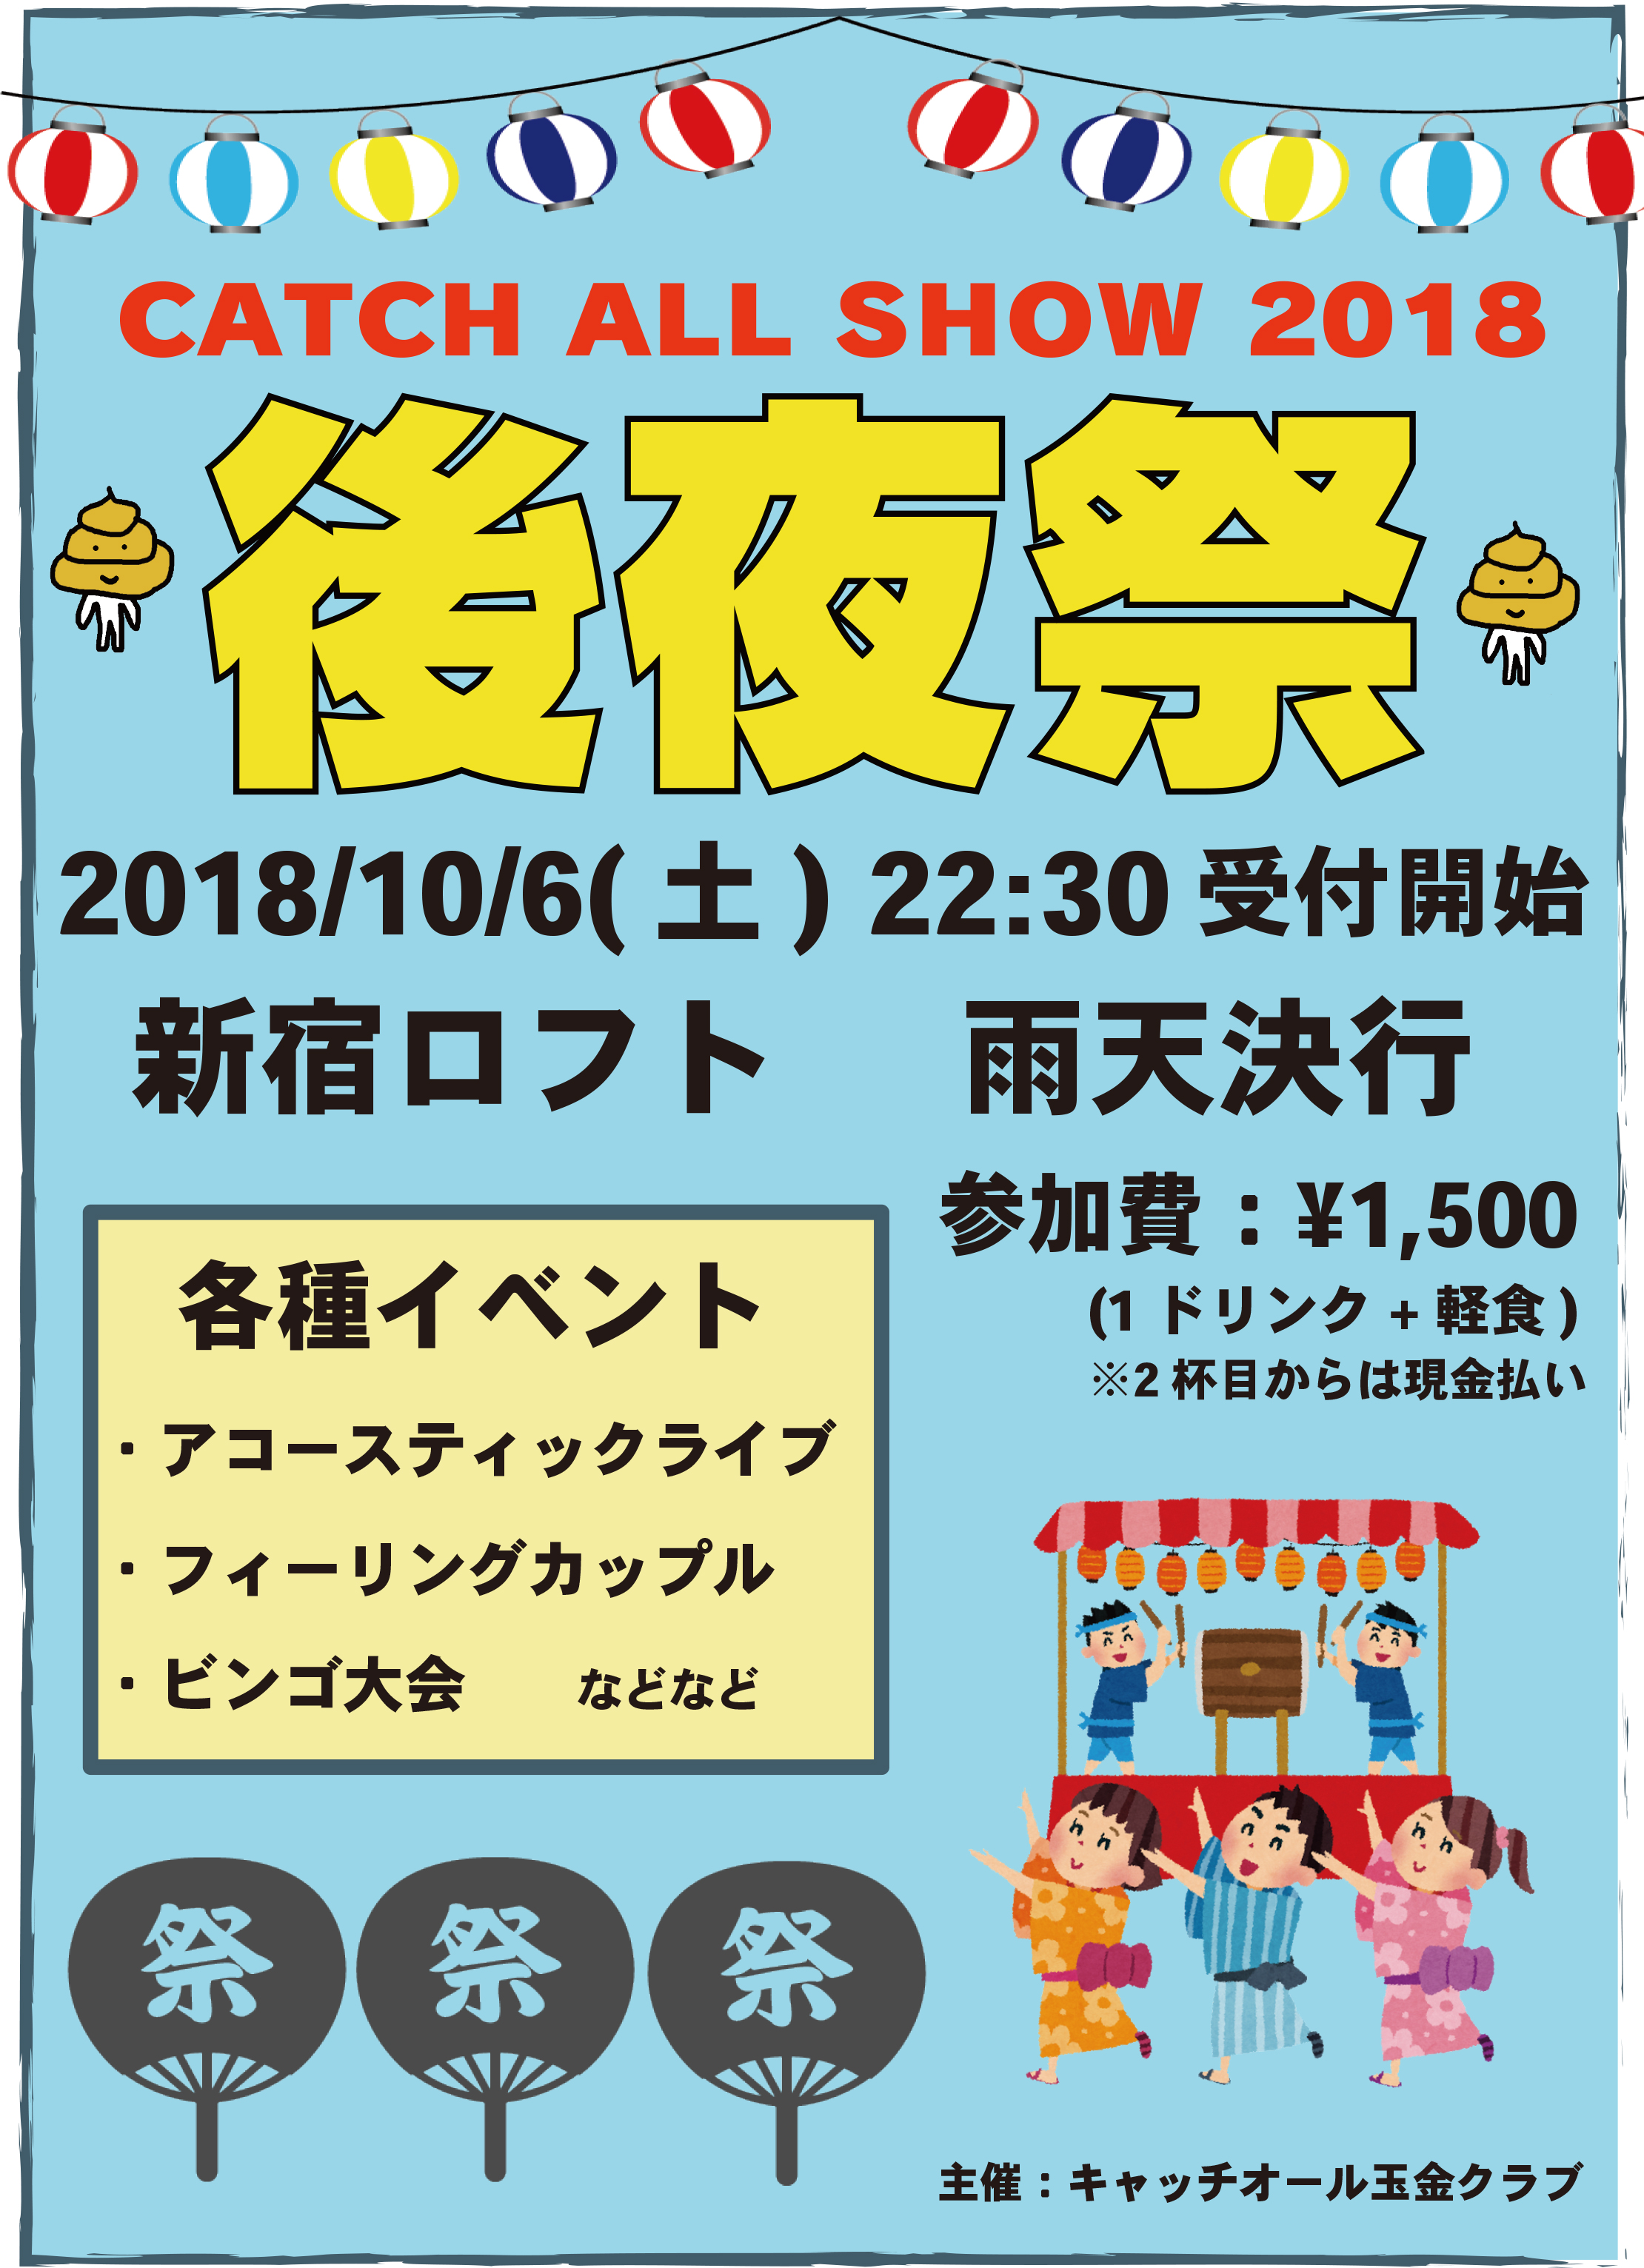 CATCH ALL SHOW 2018 後夜祭のお知らせ